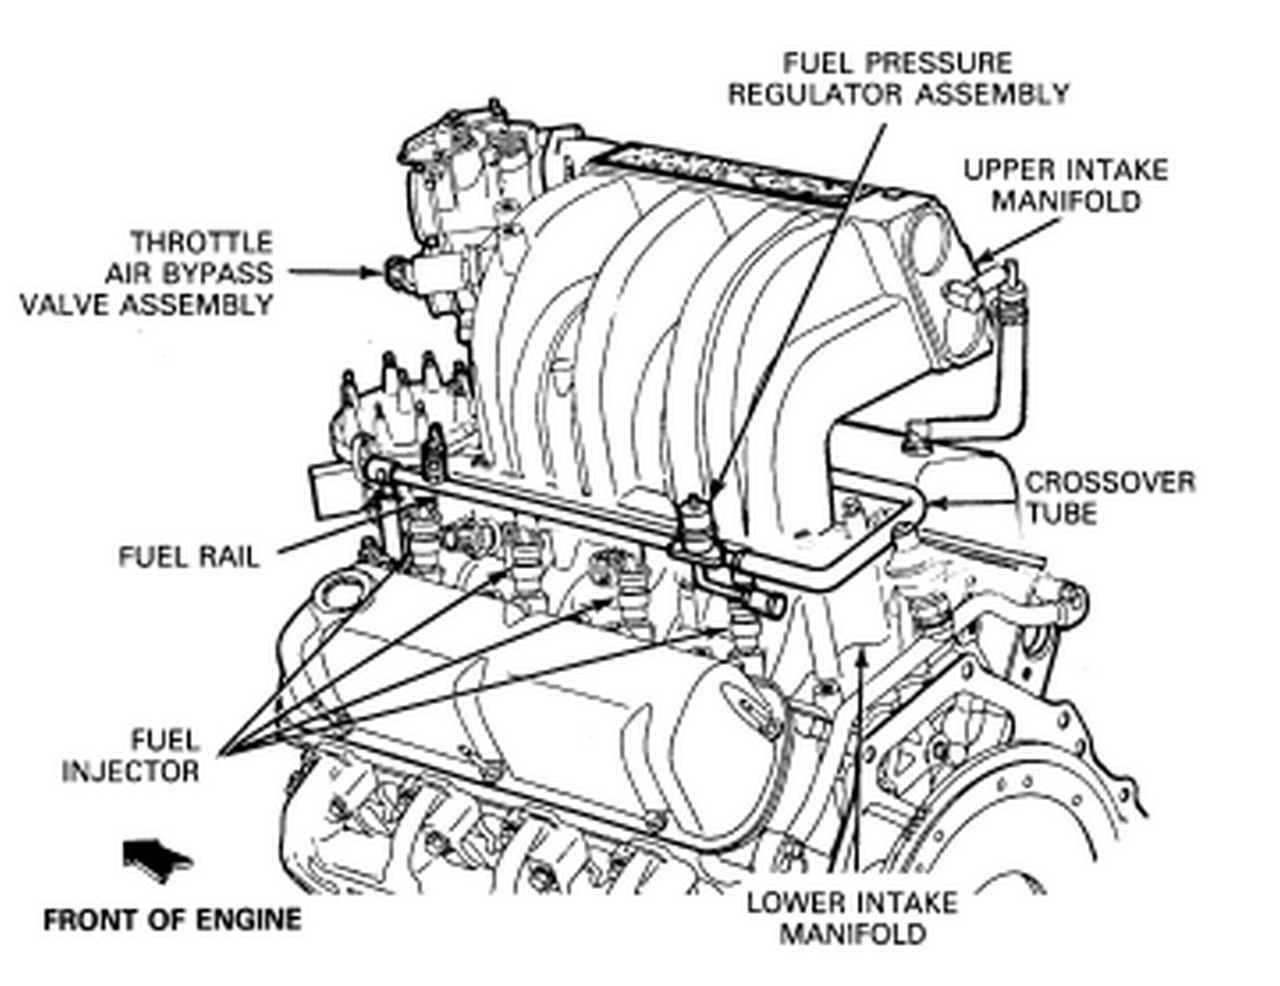 hight resolution of ford explorer sport trac fuel system diagram schematic diagram 2002 ford explorer 4 0 fuel system